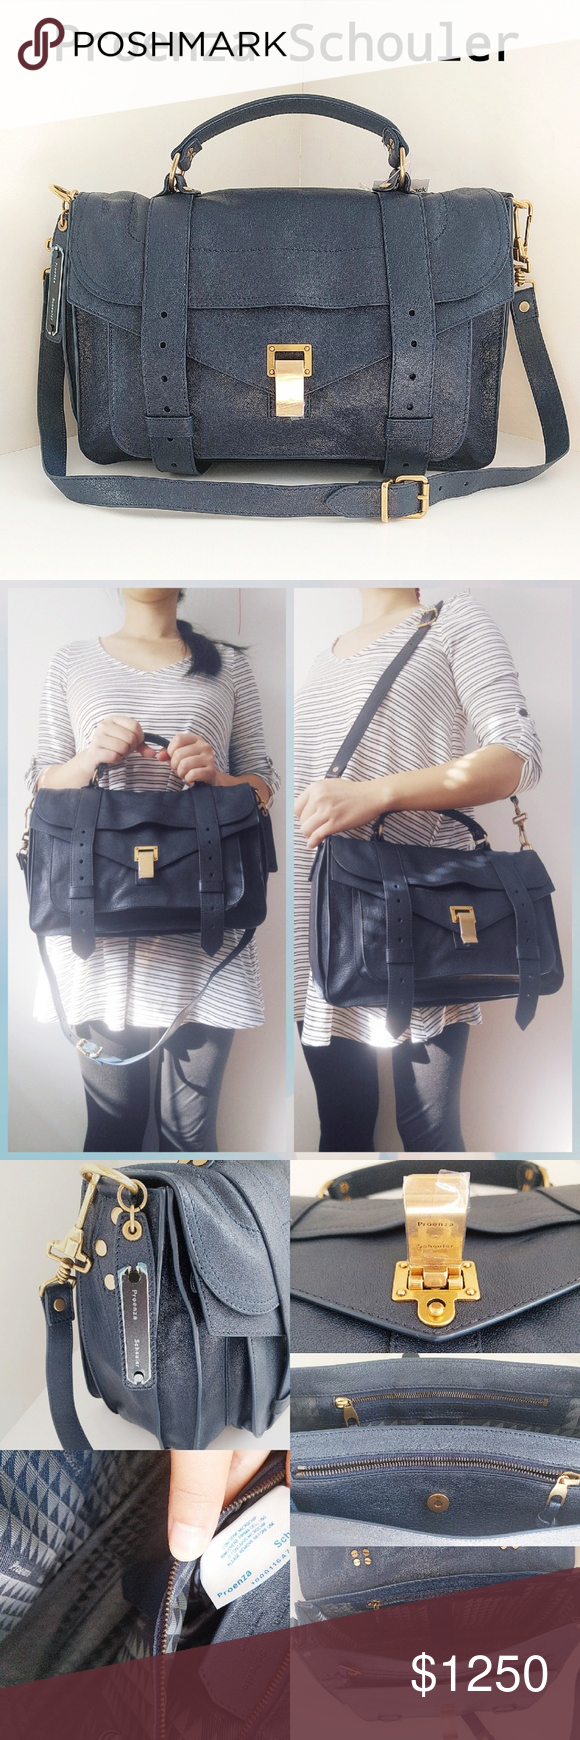 """🆕 Proenza Schouler Medium PS1 Satchel Navy Blue Spark accessory envy with Proenza Schouler's iconic PS1 satchel, cast in supple lambskin leather in a scene-stealing dark navy blue hue.  Flip-lock closure. Optional, adjustable strap. Exterior zip pocket. Snap and zip pockets under flap. Interior zip pocket. Leather.  By Proenza Schouler; made in Italy. 12.5""""W x 8.5""""H x 5""""D.  4"""" strap drop; 16.5"""" - 18.5"""" shoulder strap drop. Approx.1.9 lbs.  Brand new never worn. Comes with NR tag and gift…"""